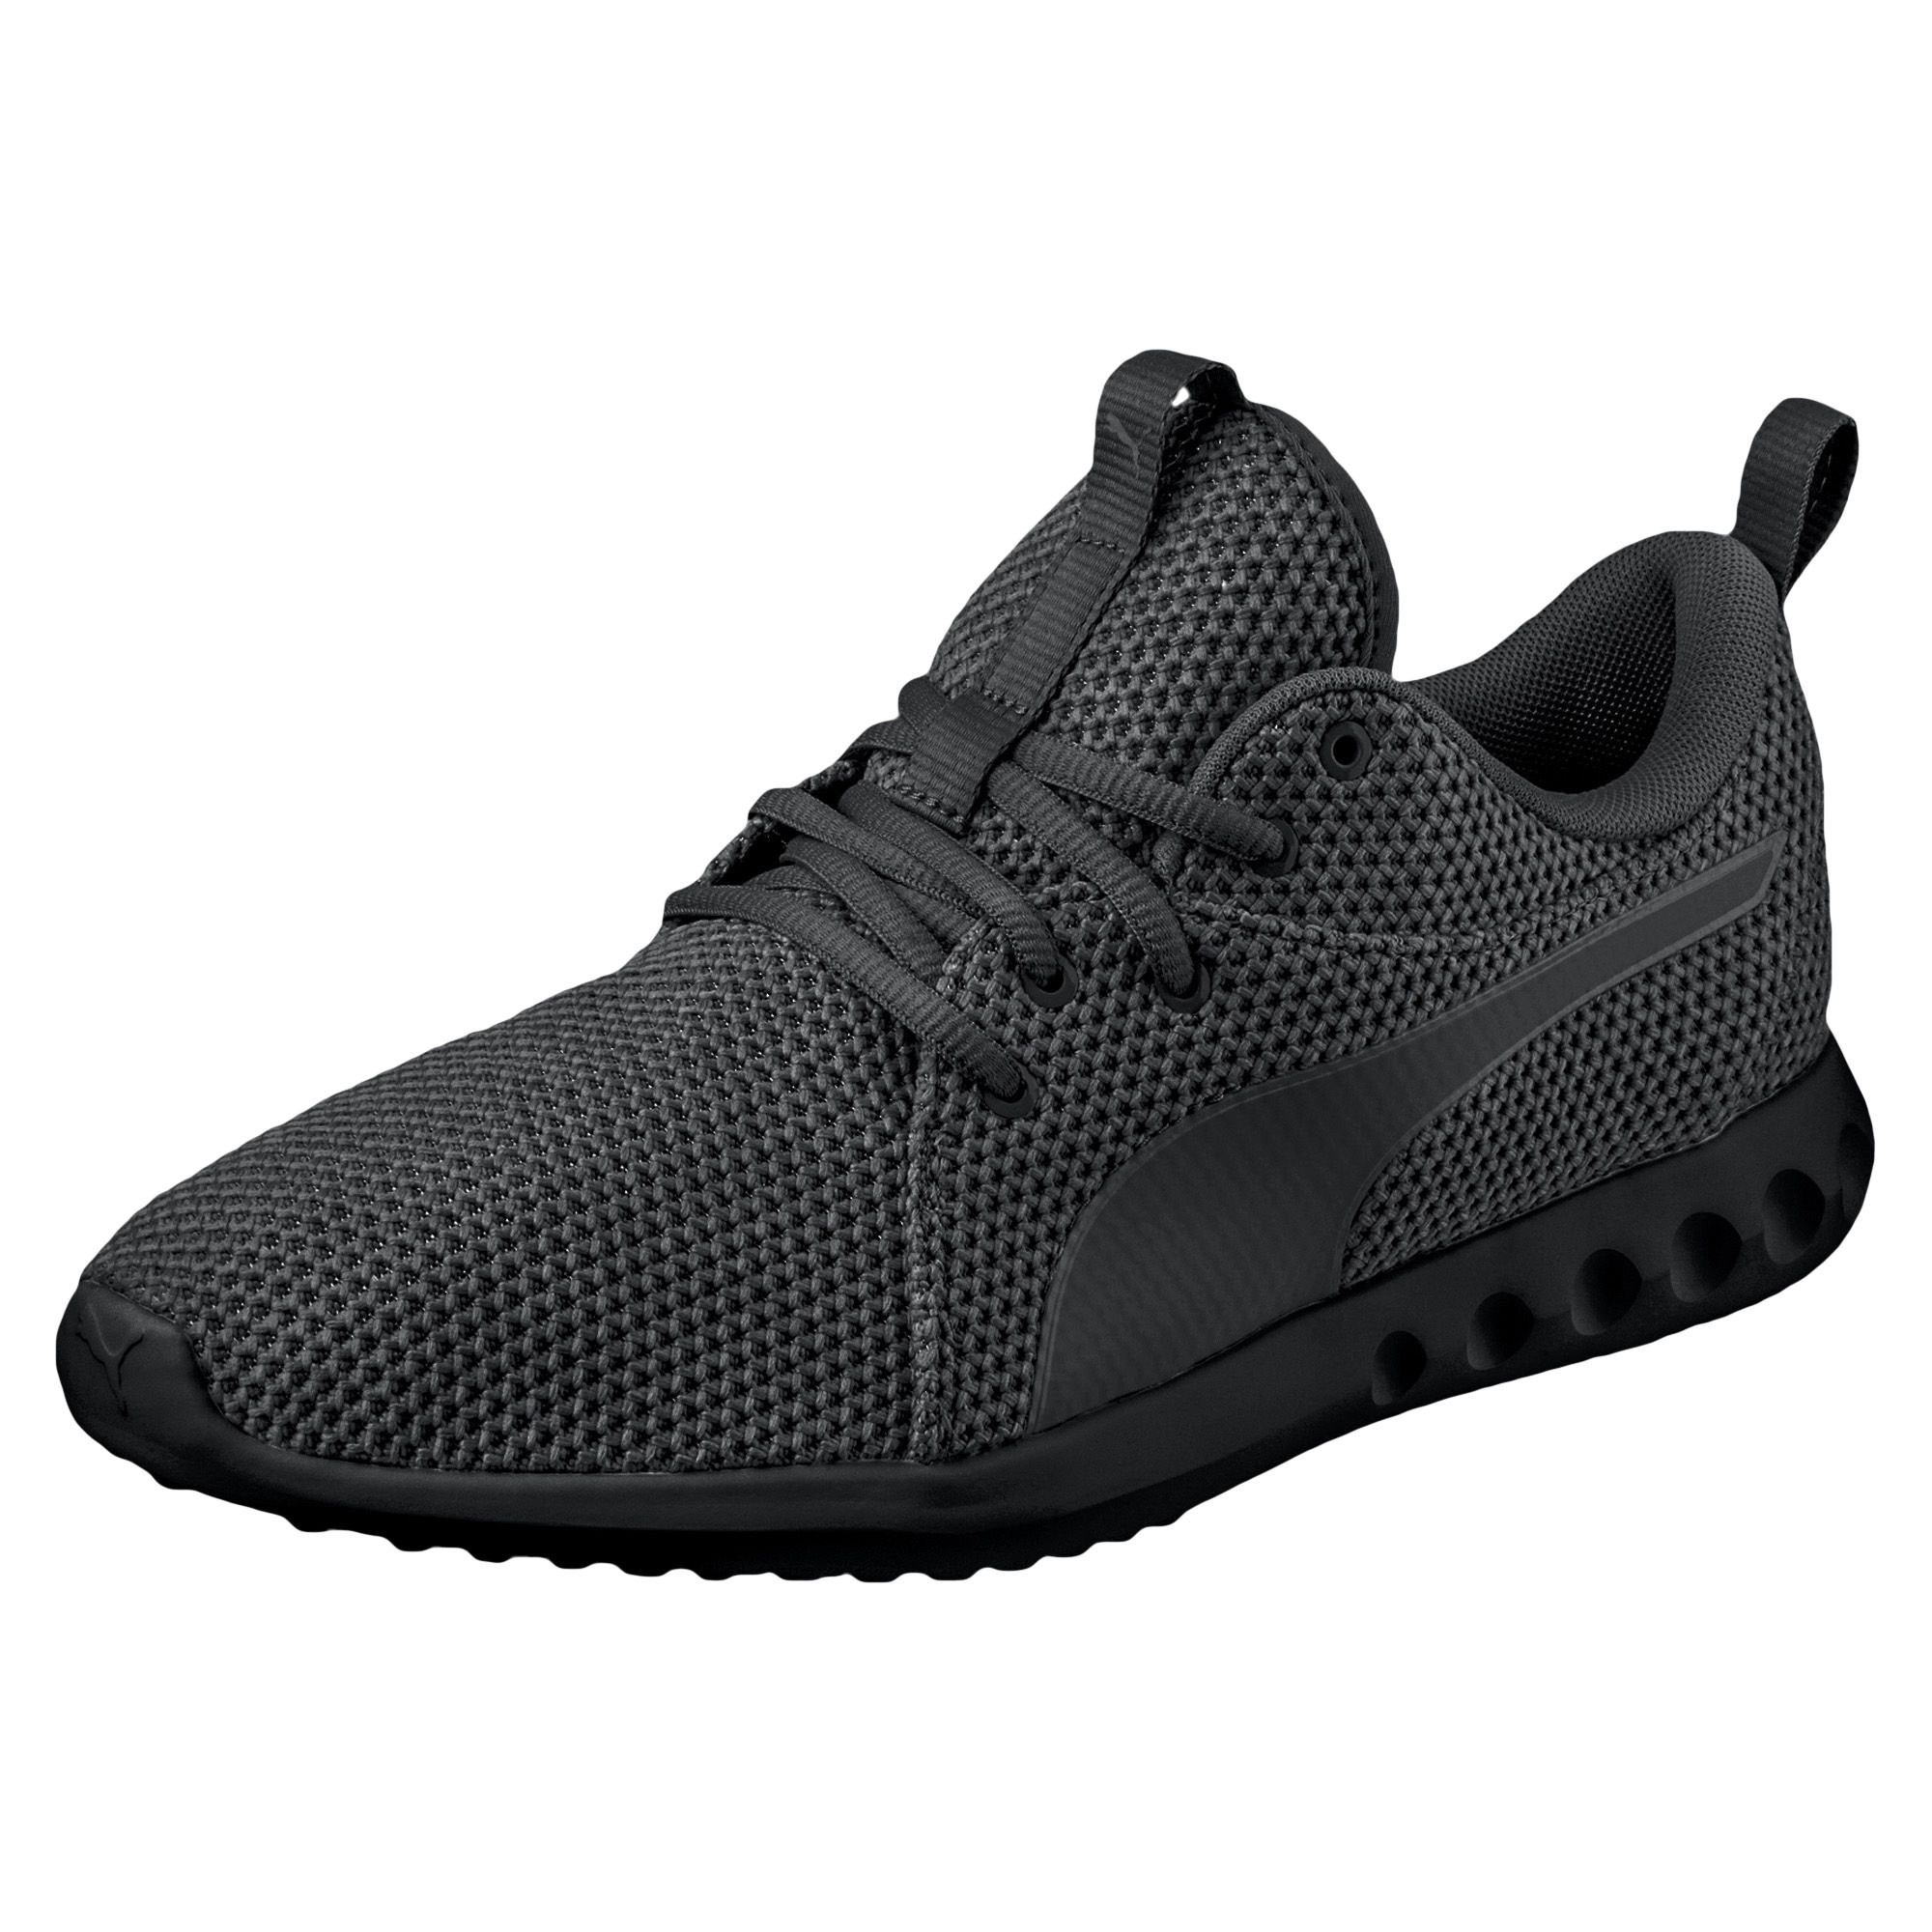 puma madrid homme chaussures